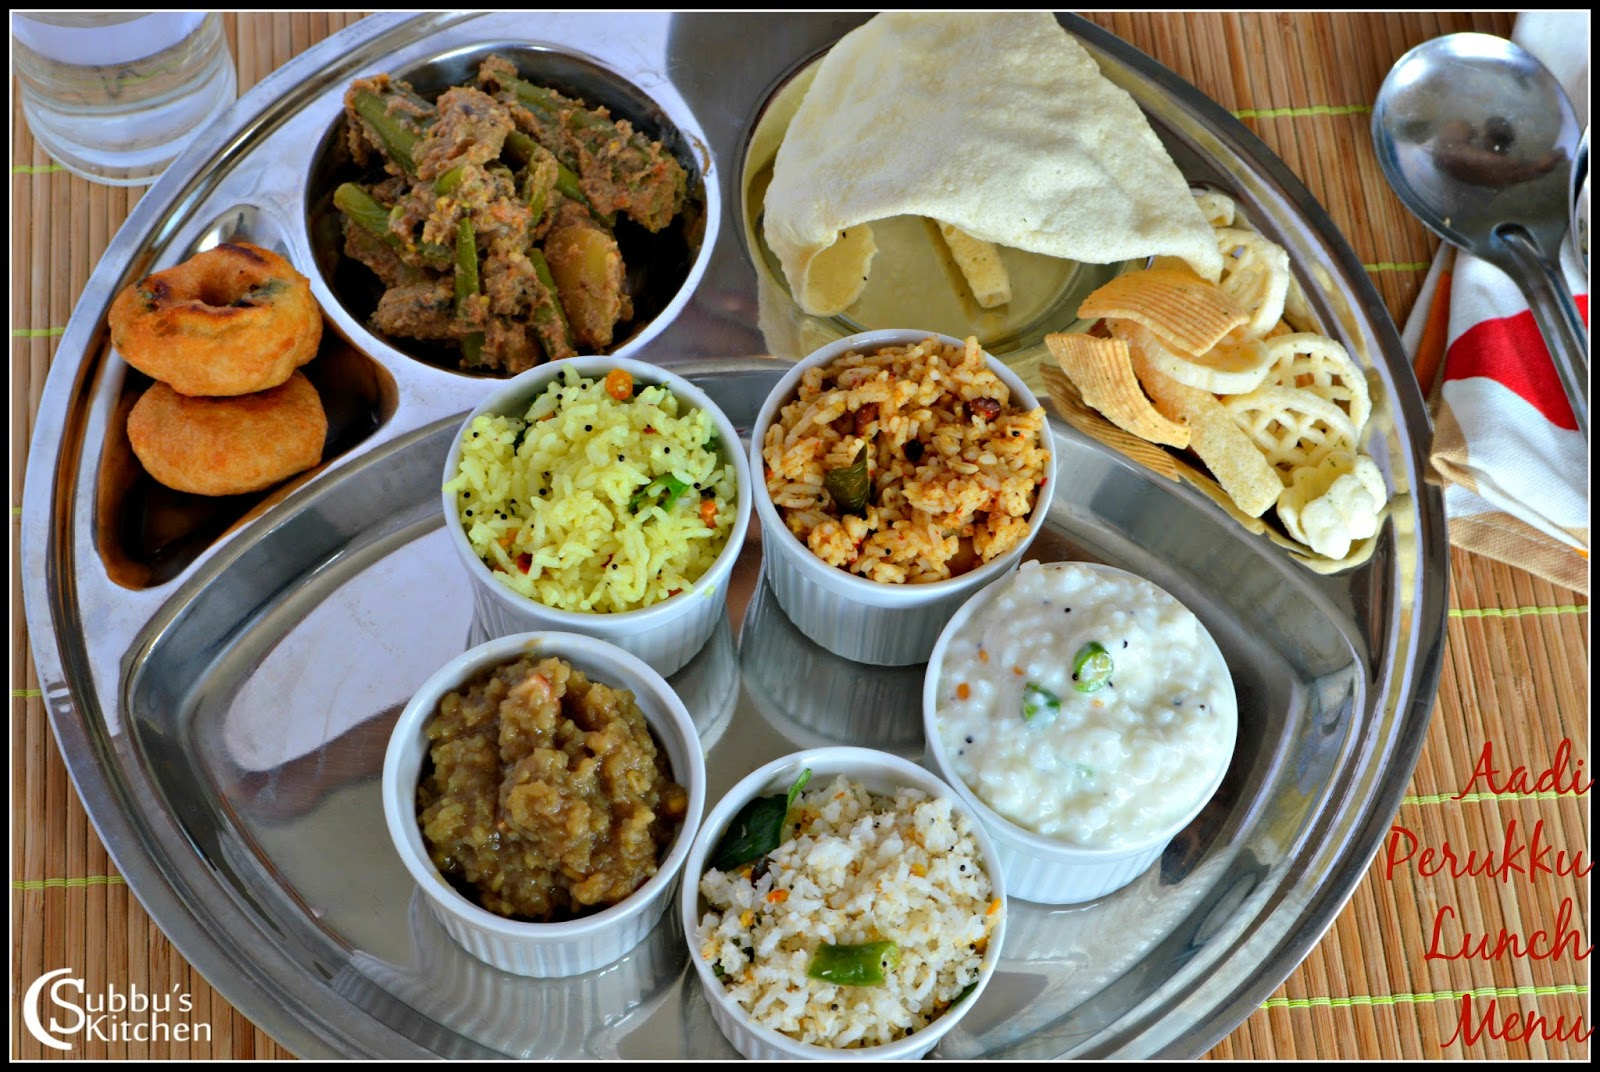 Aadi Perukku Lunch Menu